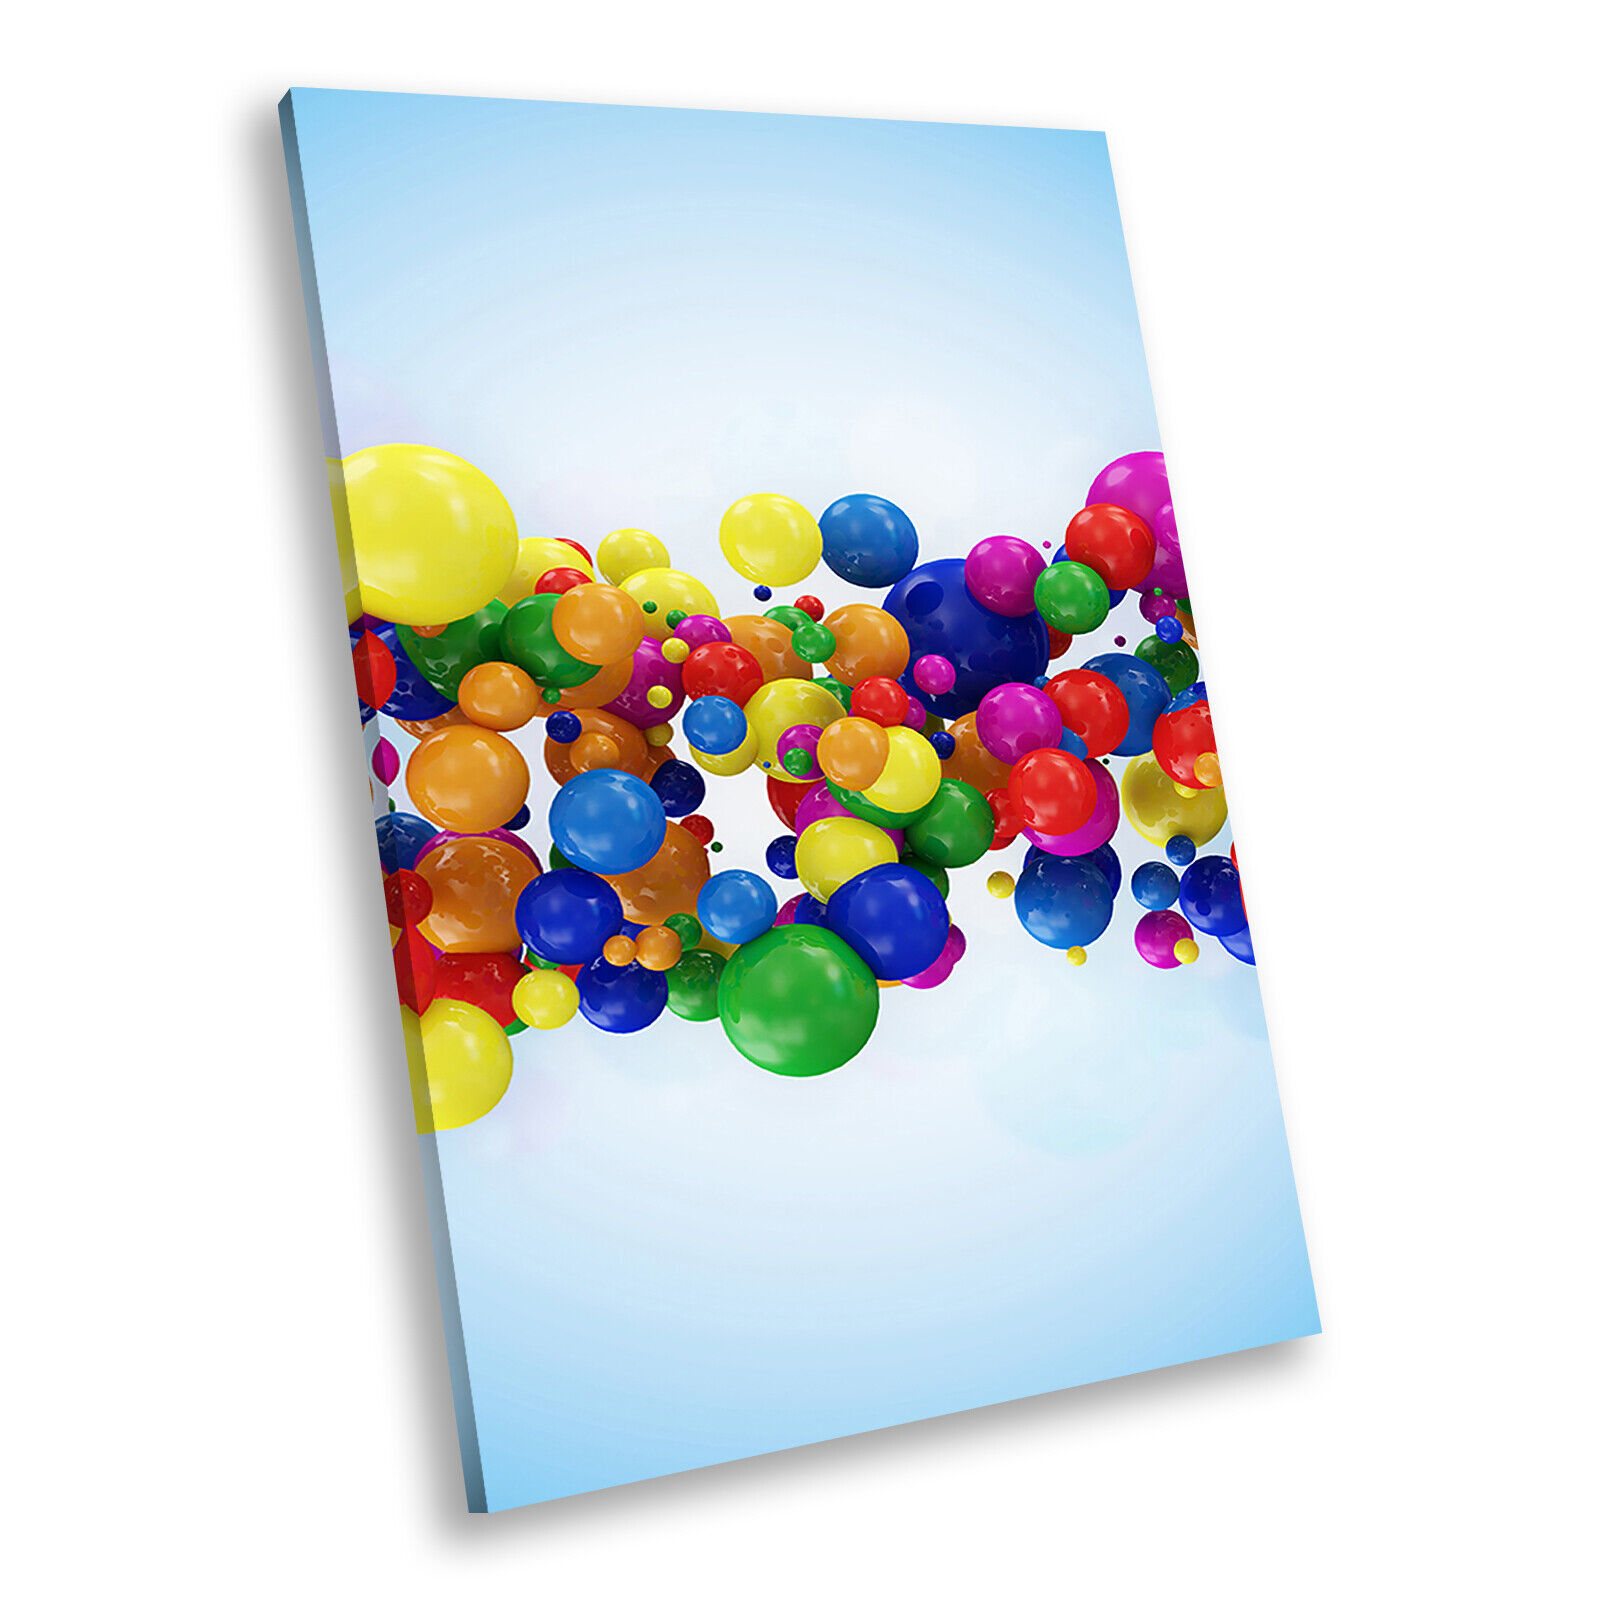 Blau Colourful Balls Portrait Abstract Canvas Framed Art Large Picture